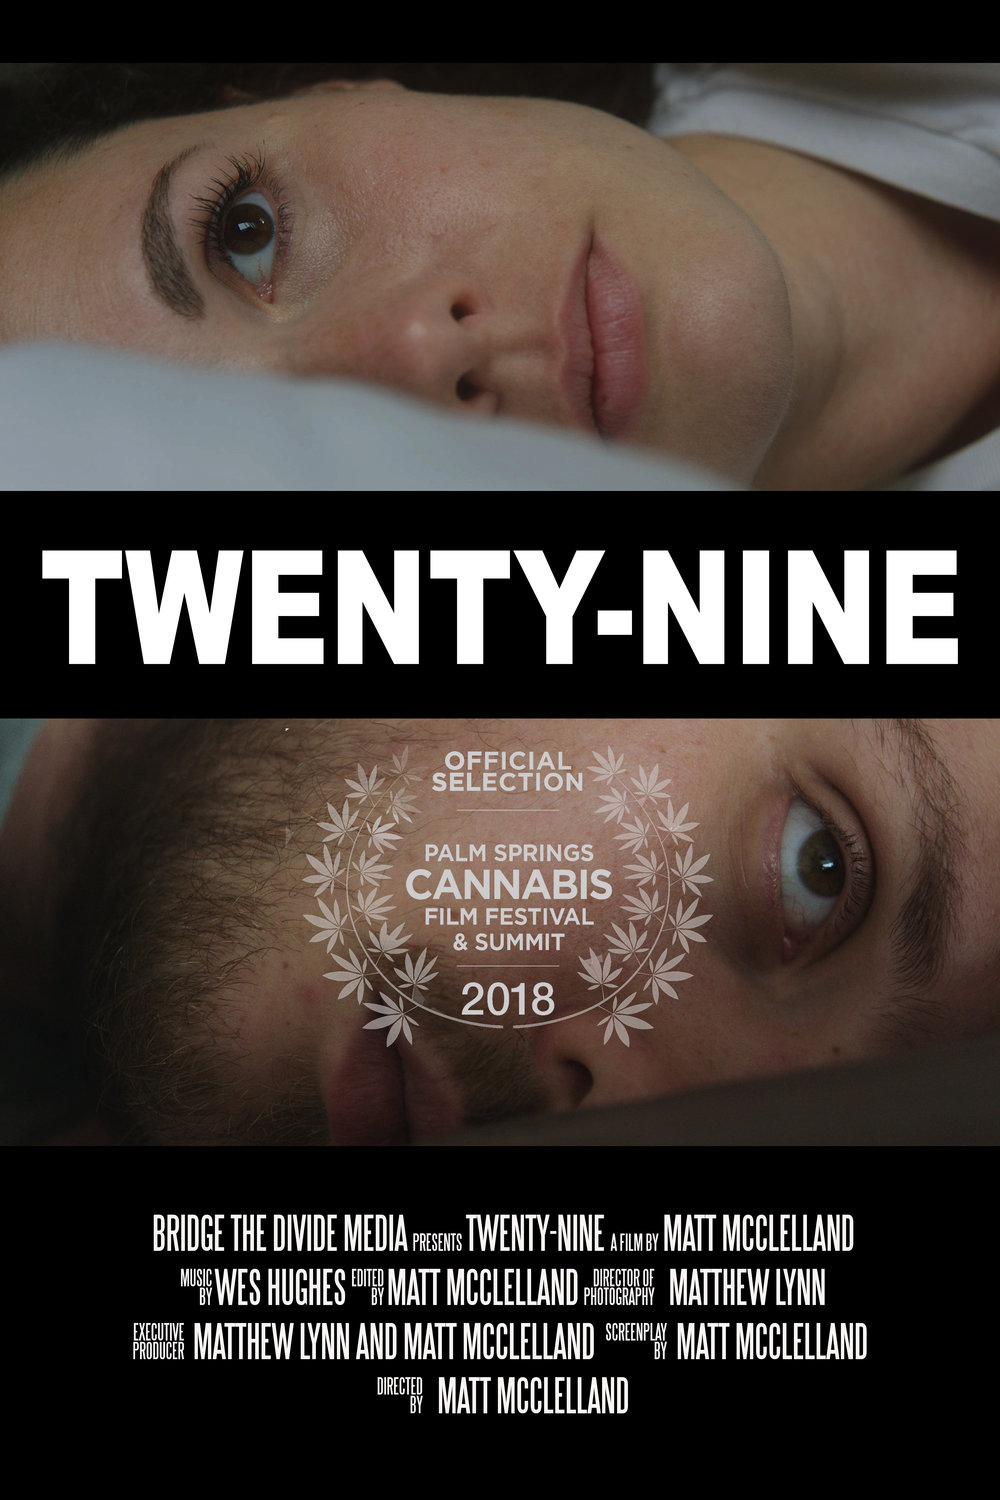 Twenty-nine poster with Laurel.jpg